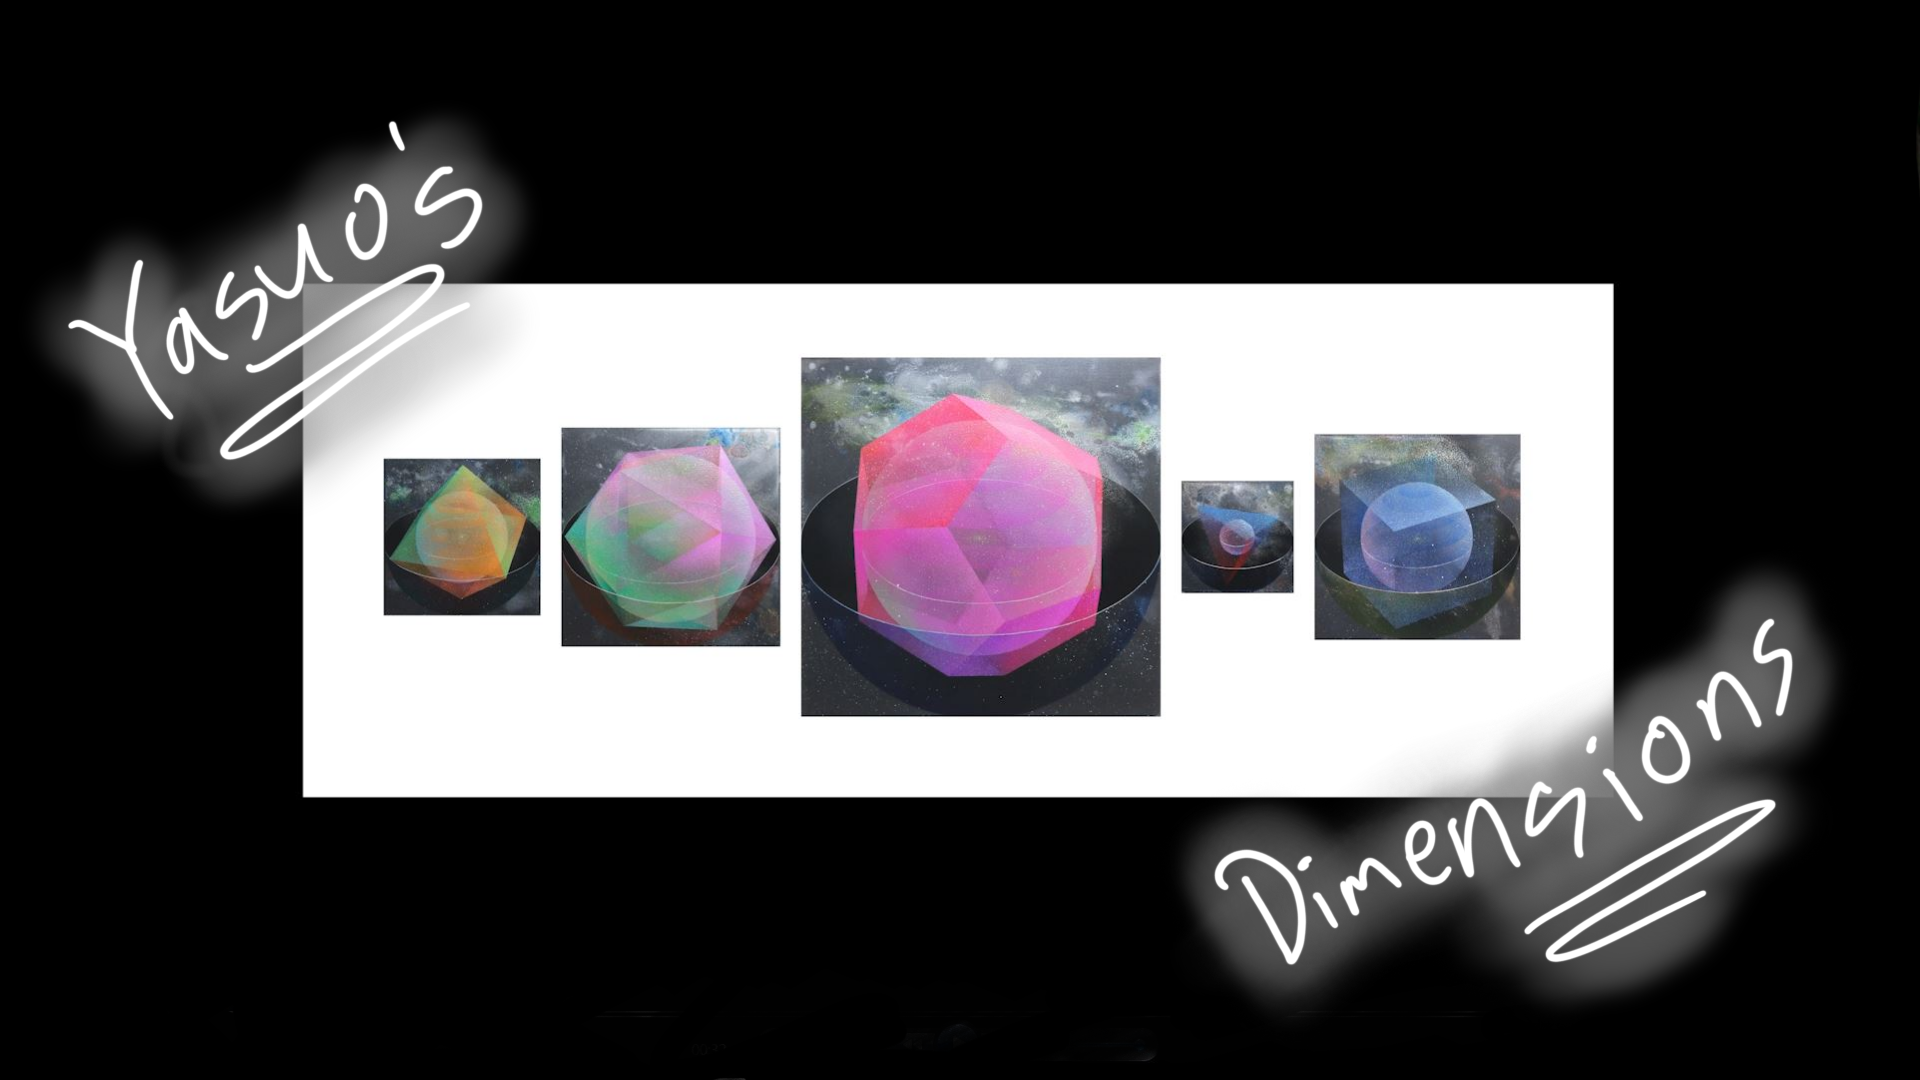 Paintings of 3-dimensional solids are the focus of this title sequence from Yasuo's Dimensions.